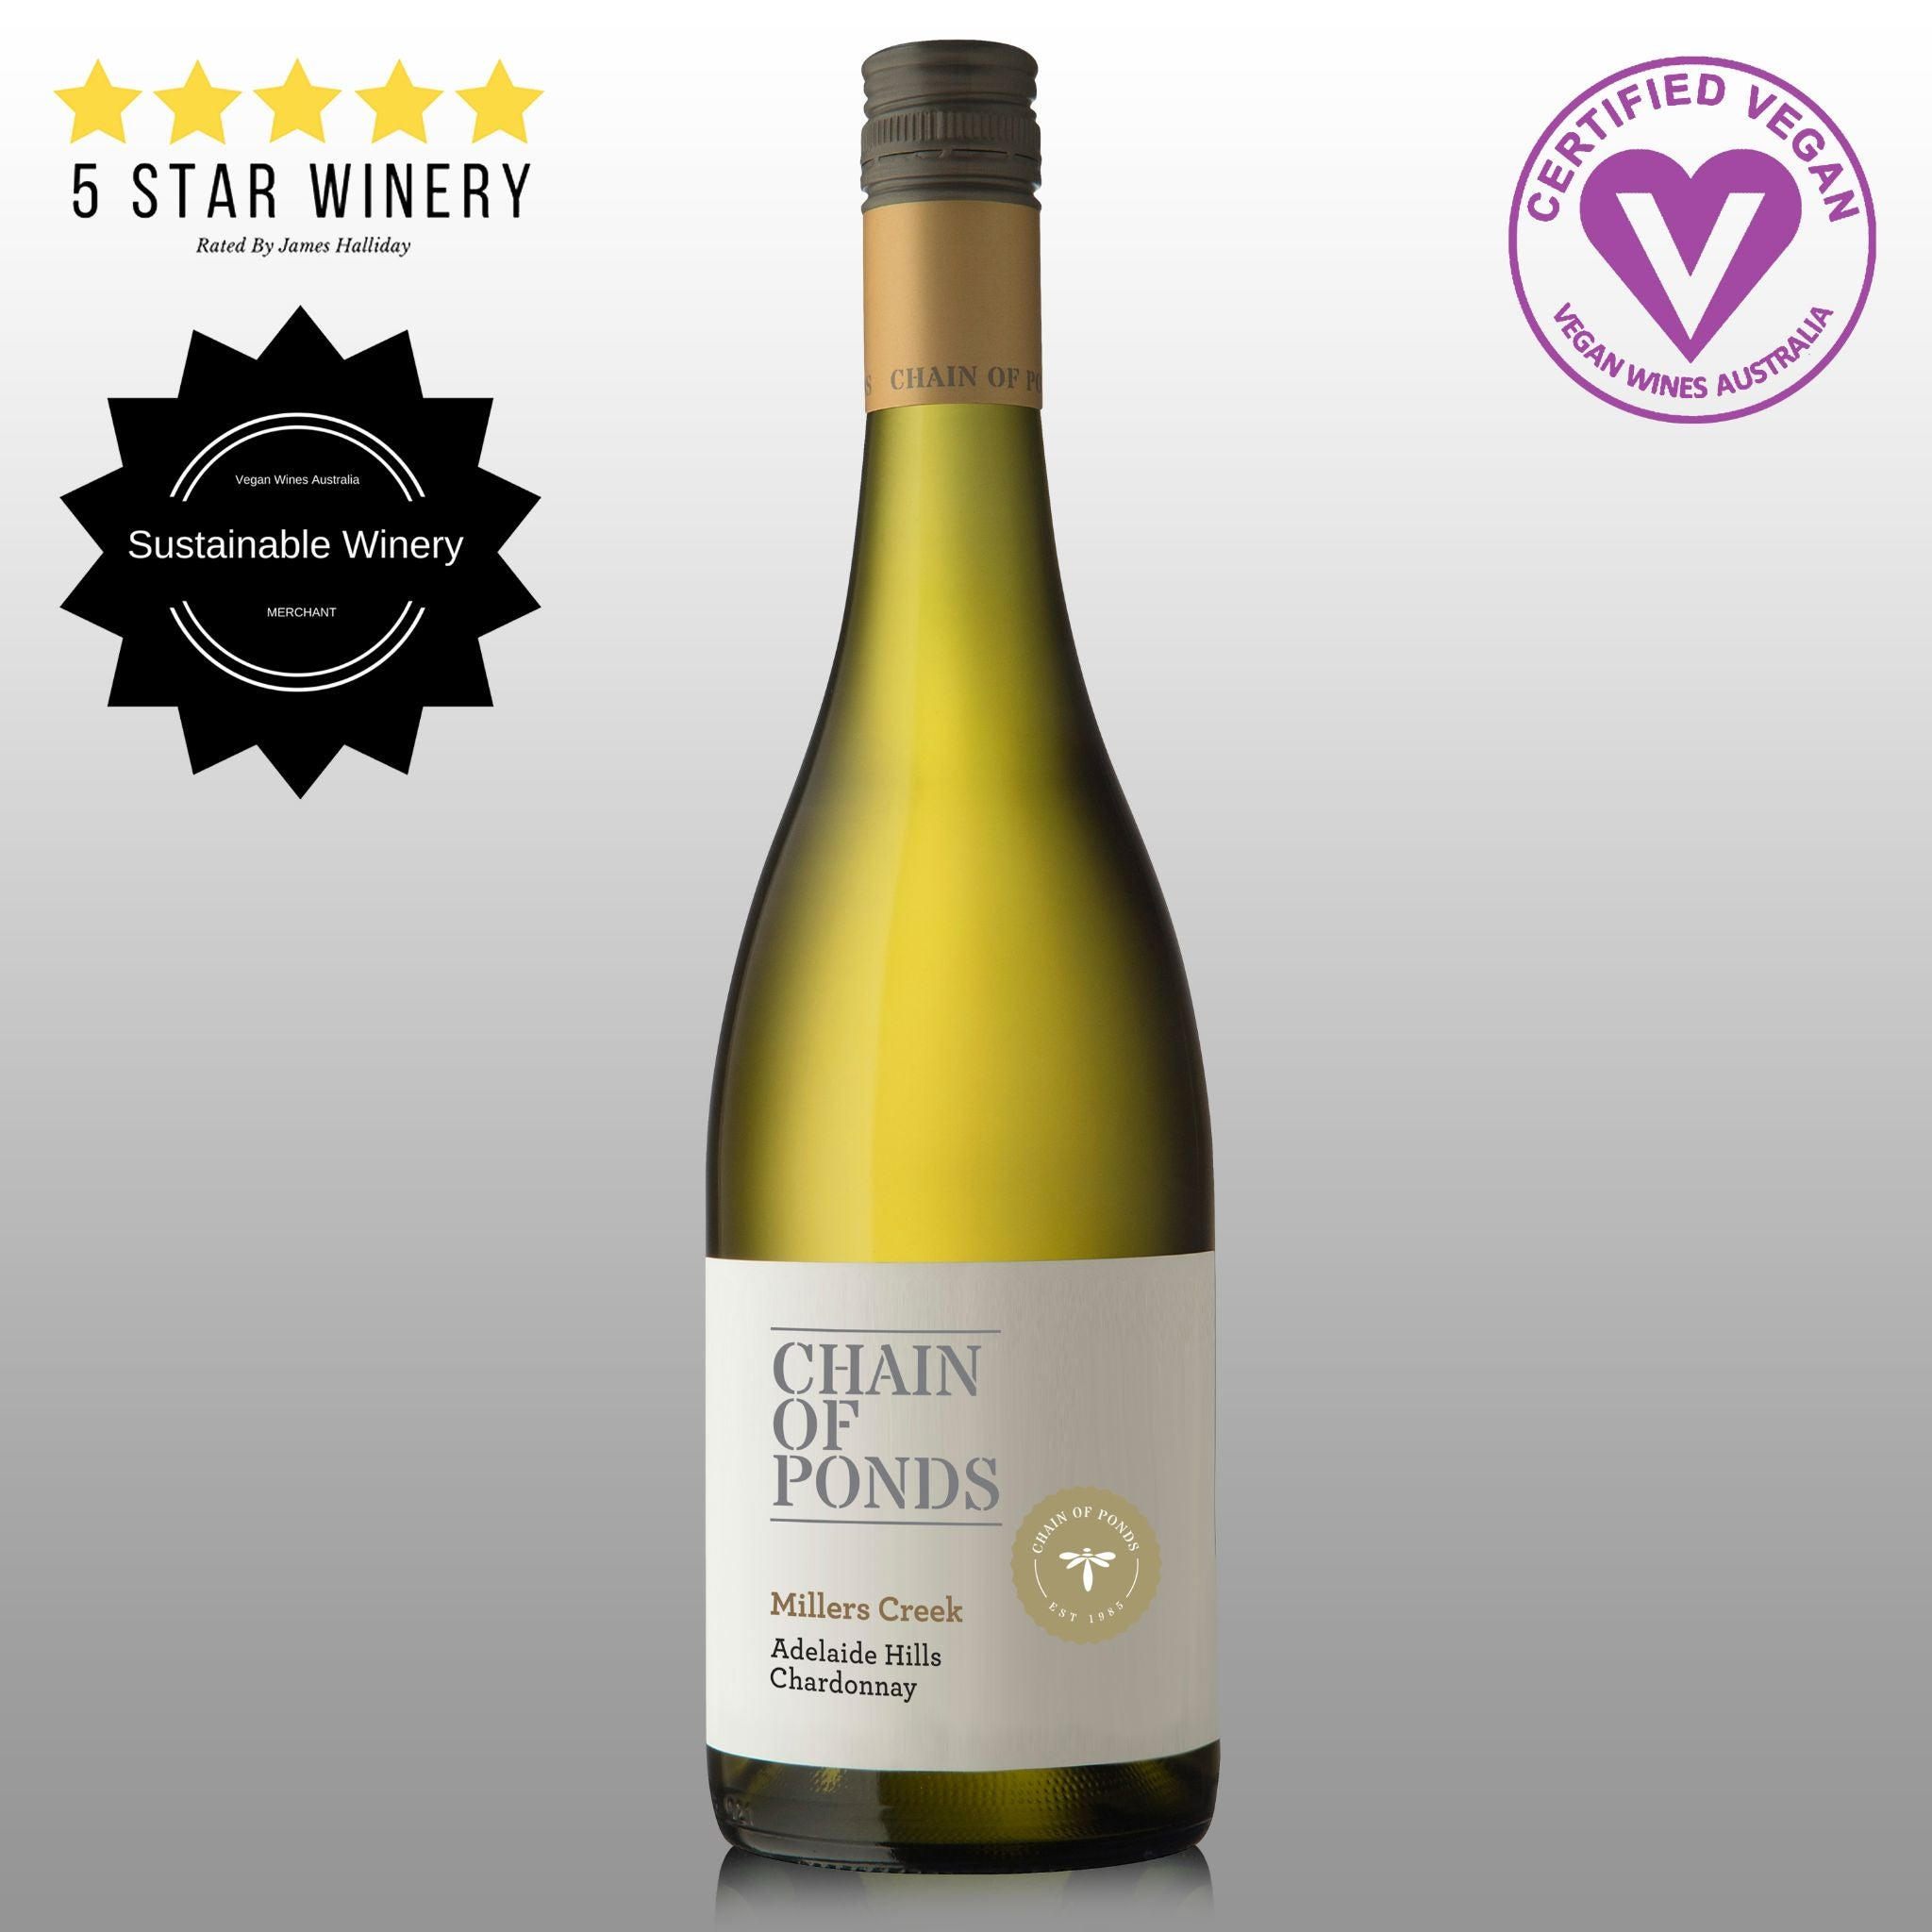 Chain of Ponds Adelaide Hills Range 2017 Miller's Creek Chardonnay - 6 Pack